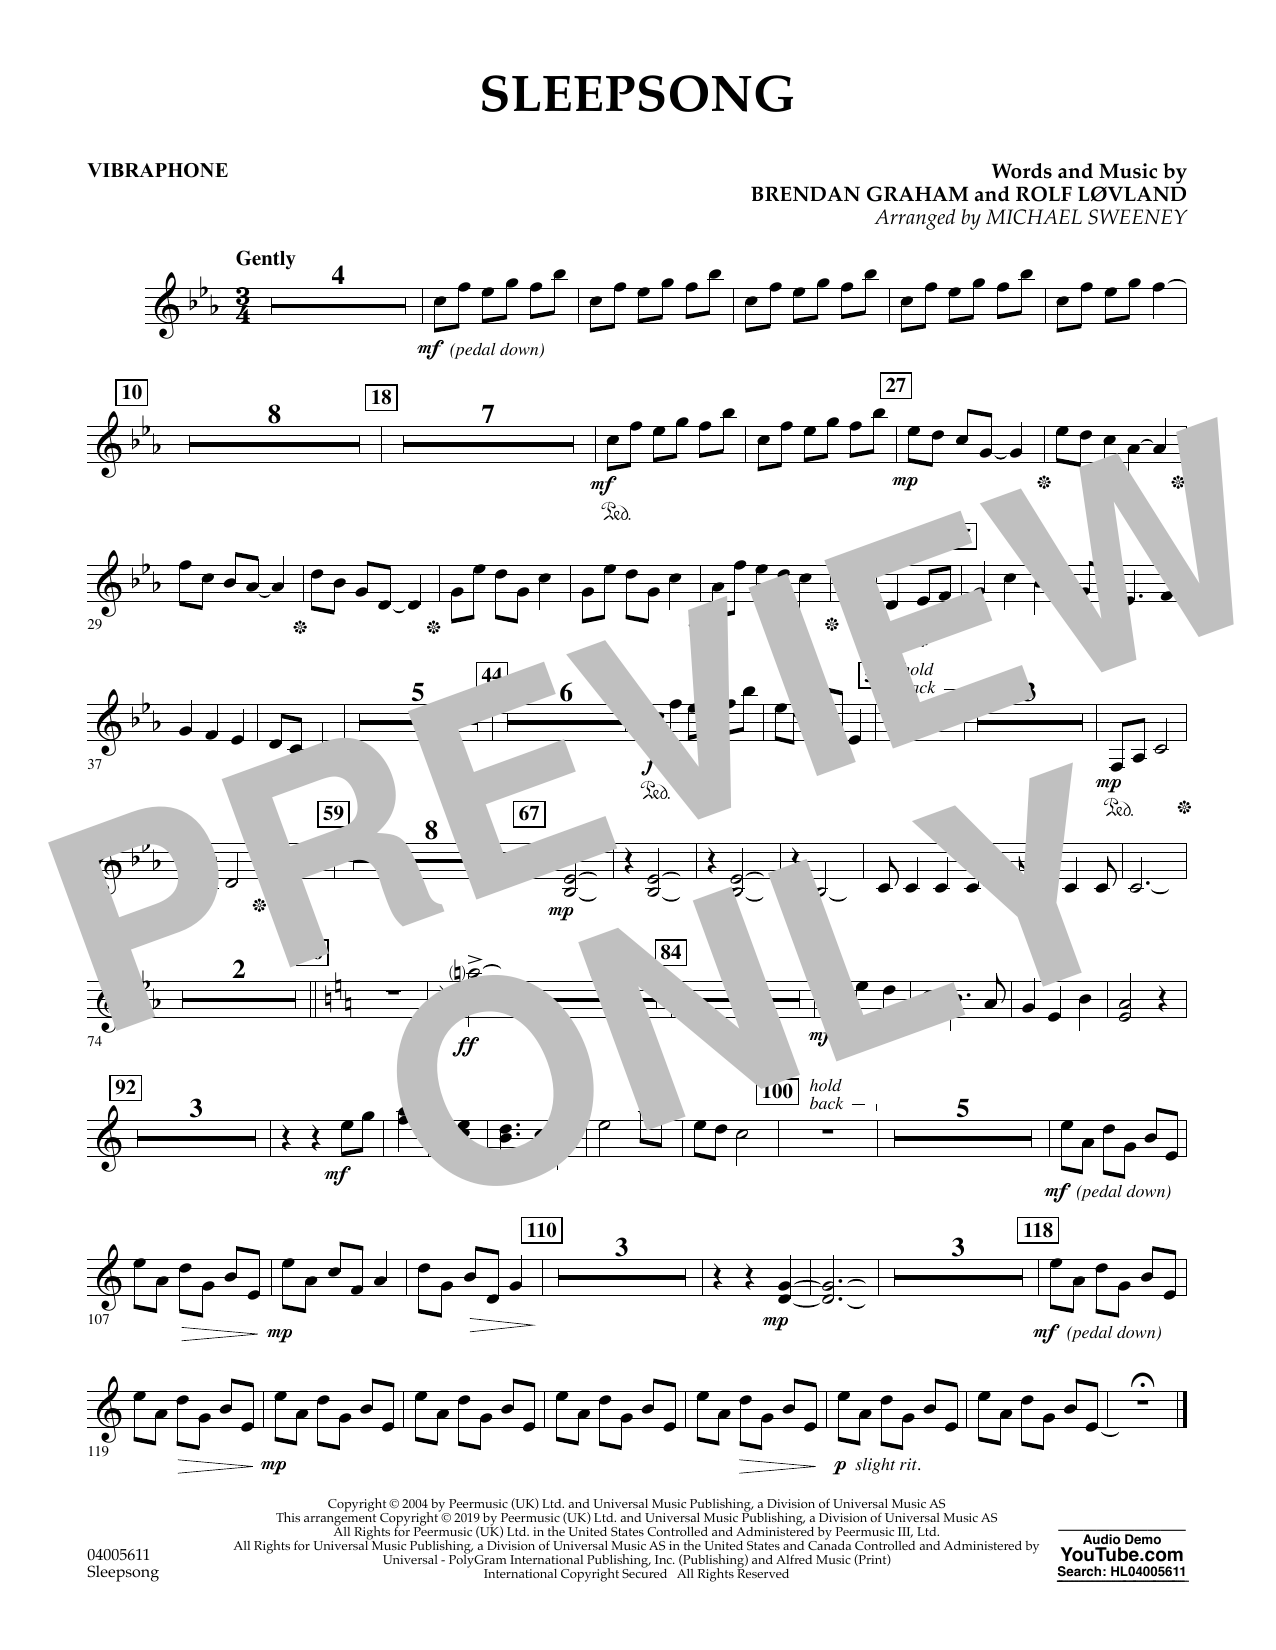 Secret Garden Sleepsong (arr. Michael Sweeney) - Vibraphone sheet music preview music notes and score for Concert Band including 1 page(s)